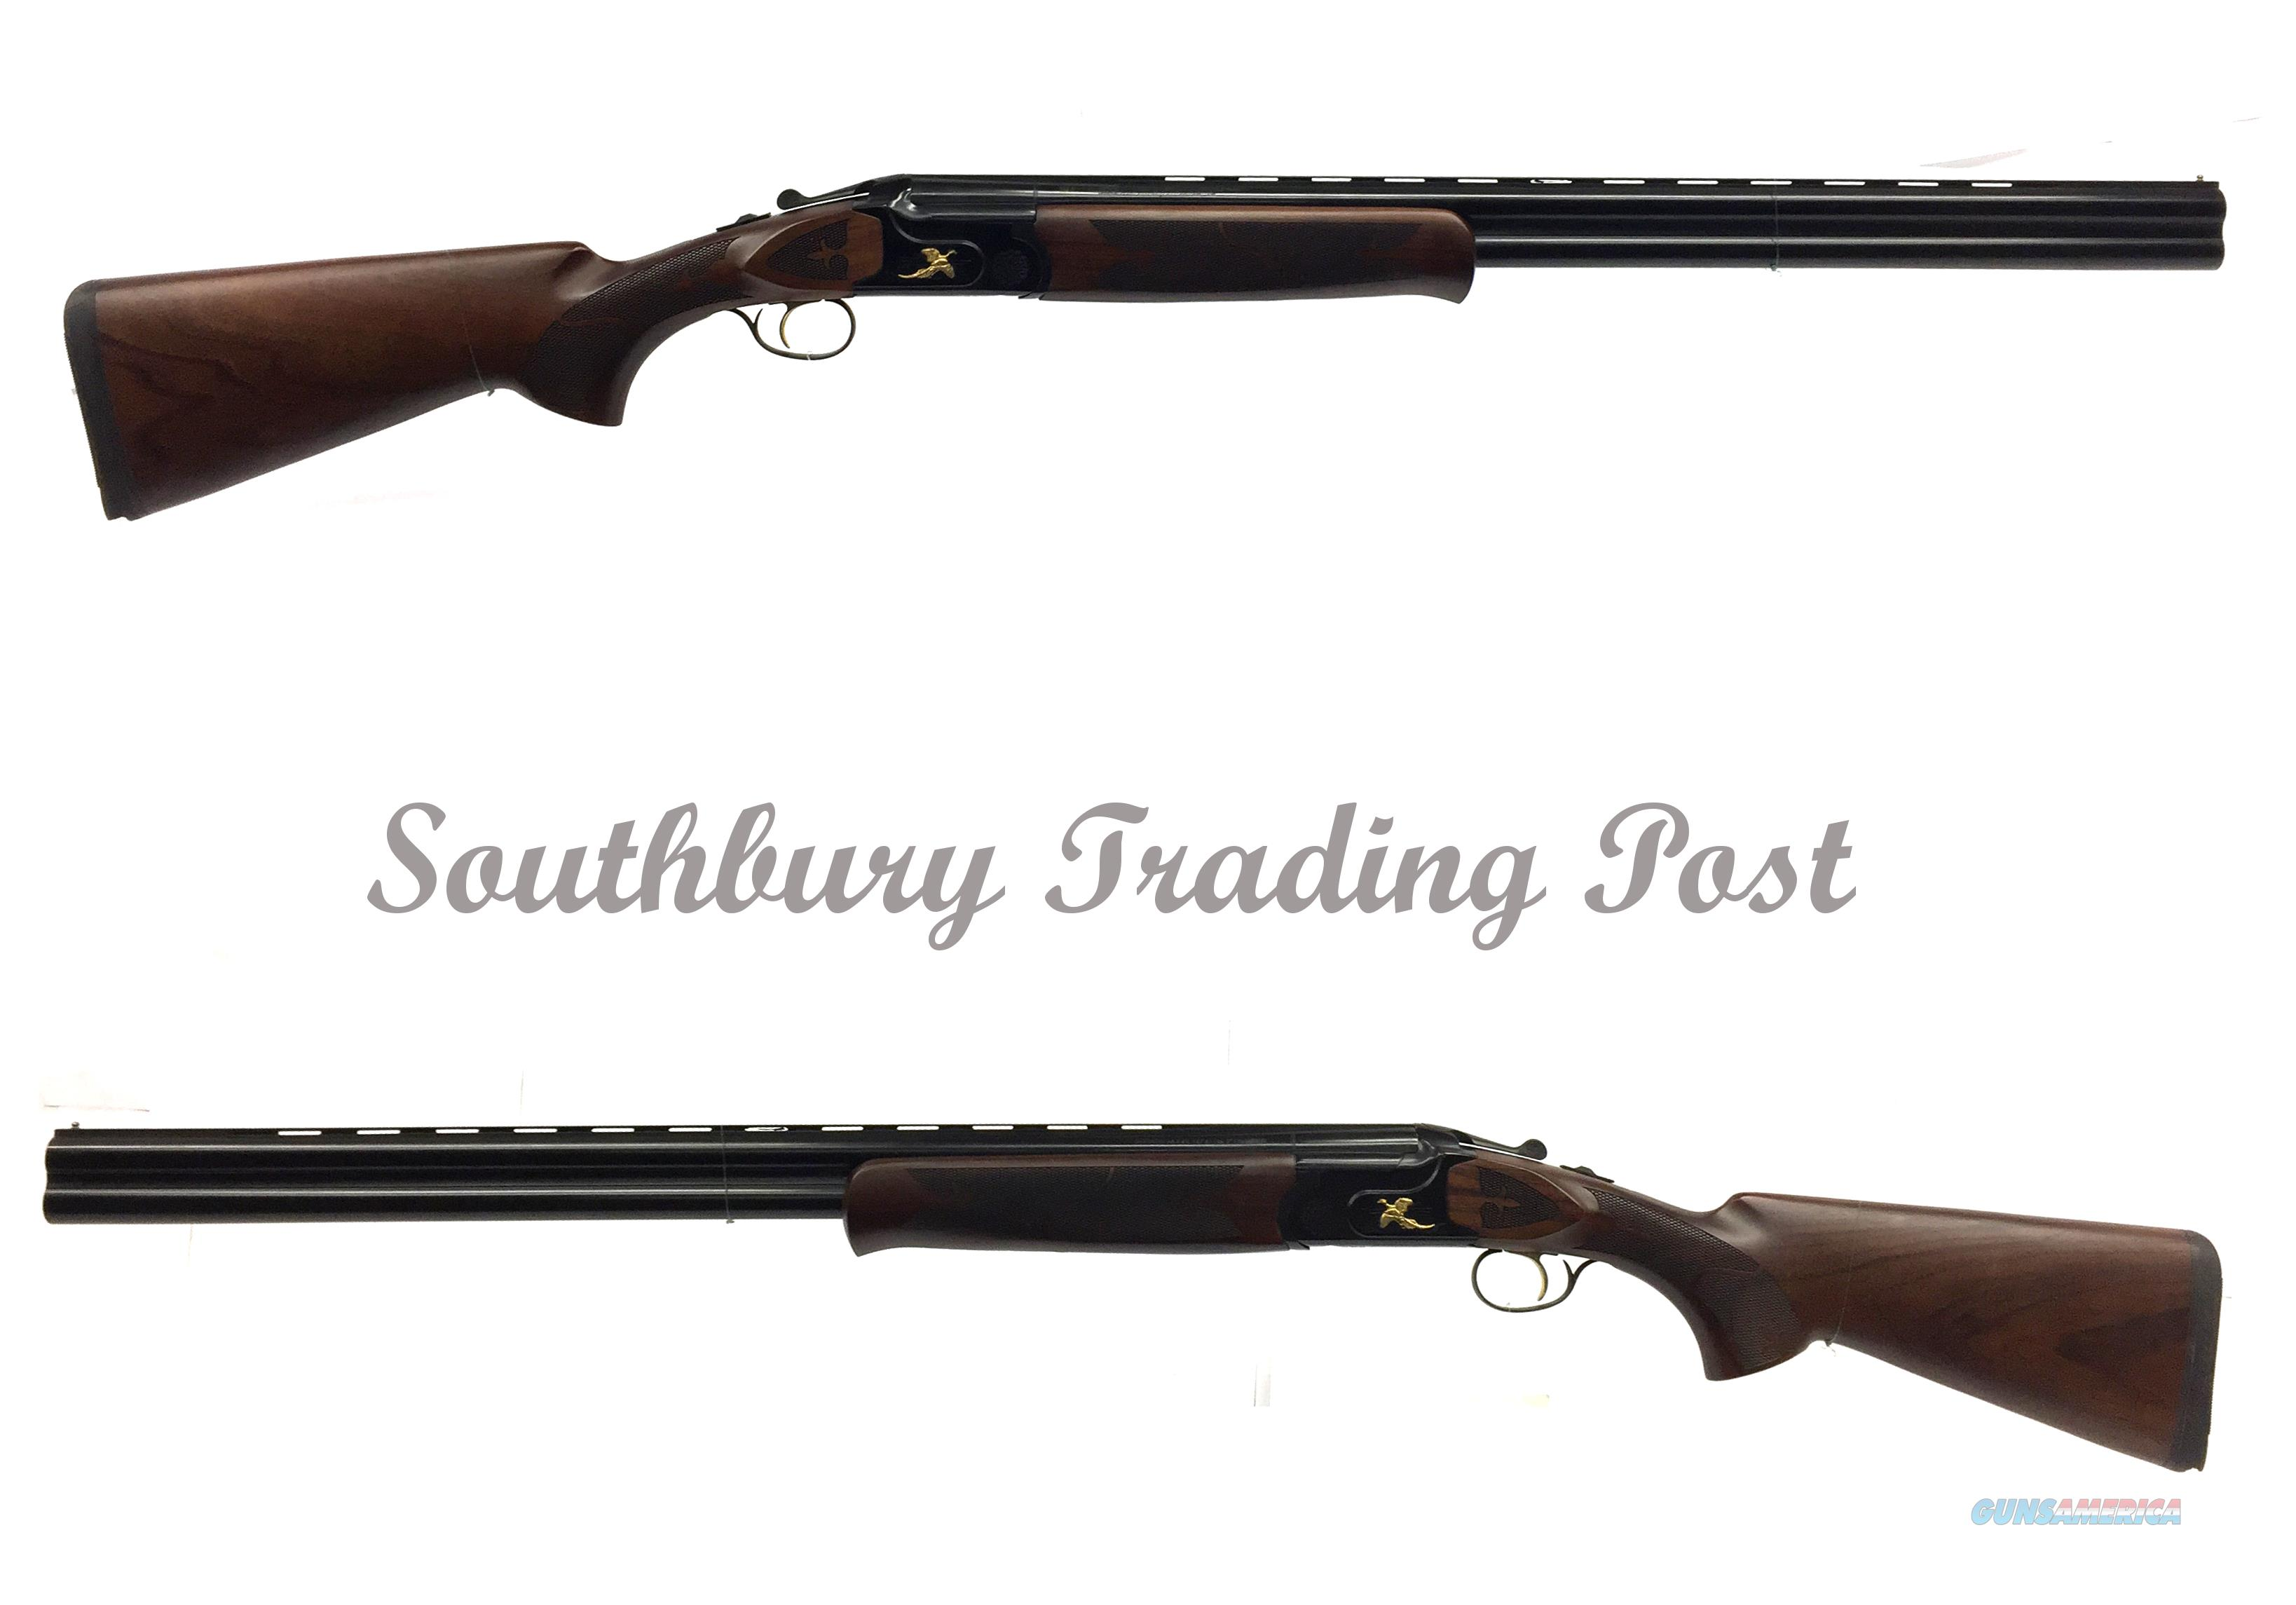 Stevens Model 512 Gold Wing 12 Gauge Over/ Under Shotgun  Guns > Shotguns > Stevens Shotguns